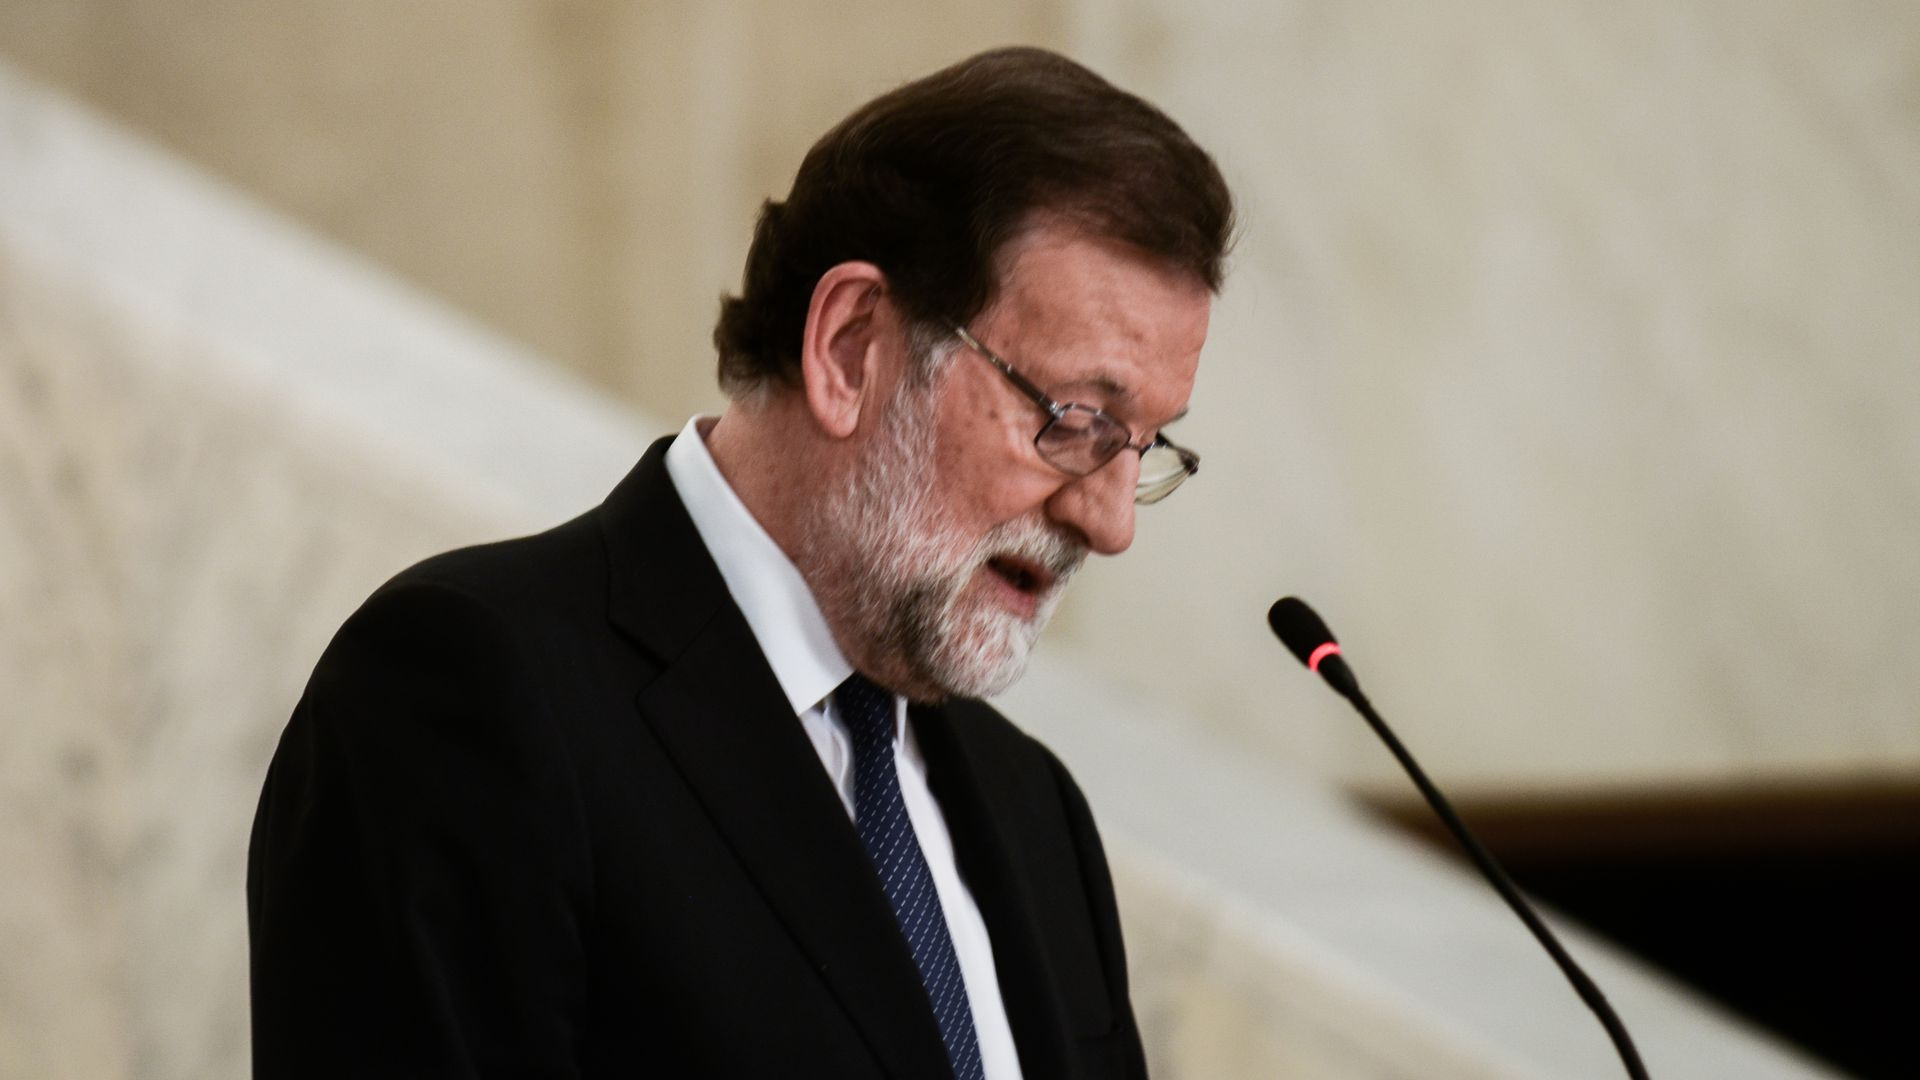 Spanish PM Mariano Rajoy looks down while speaking at a press conference